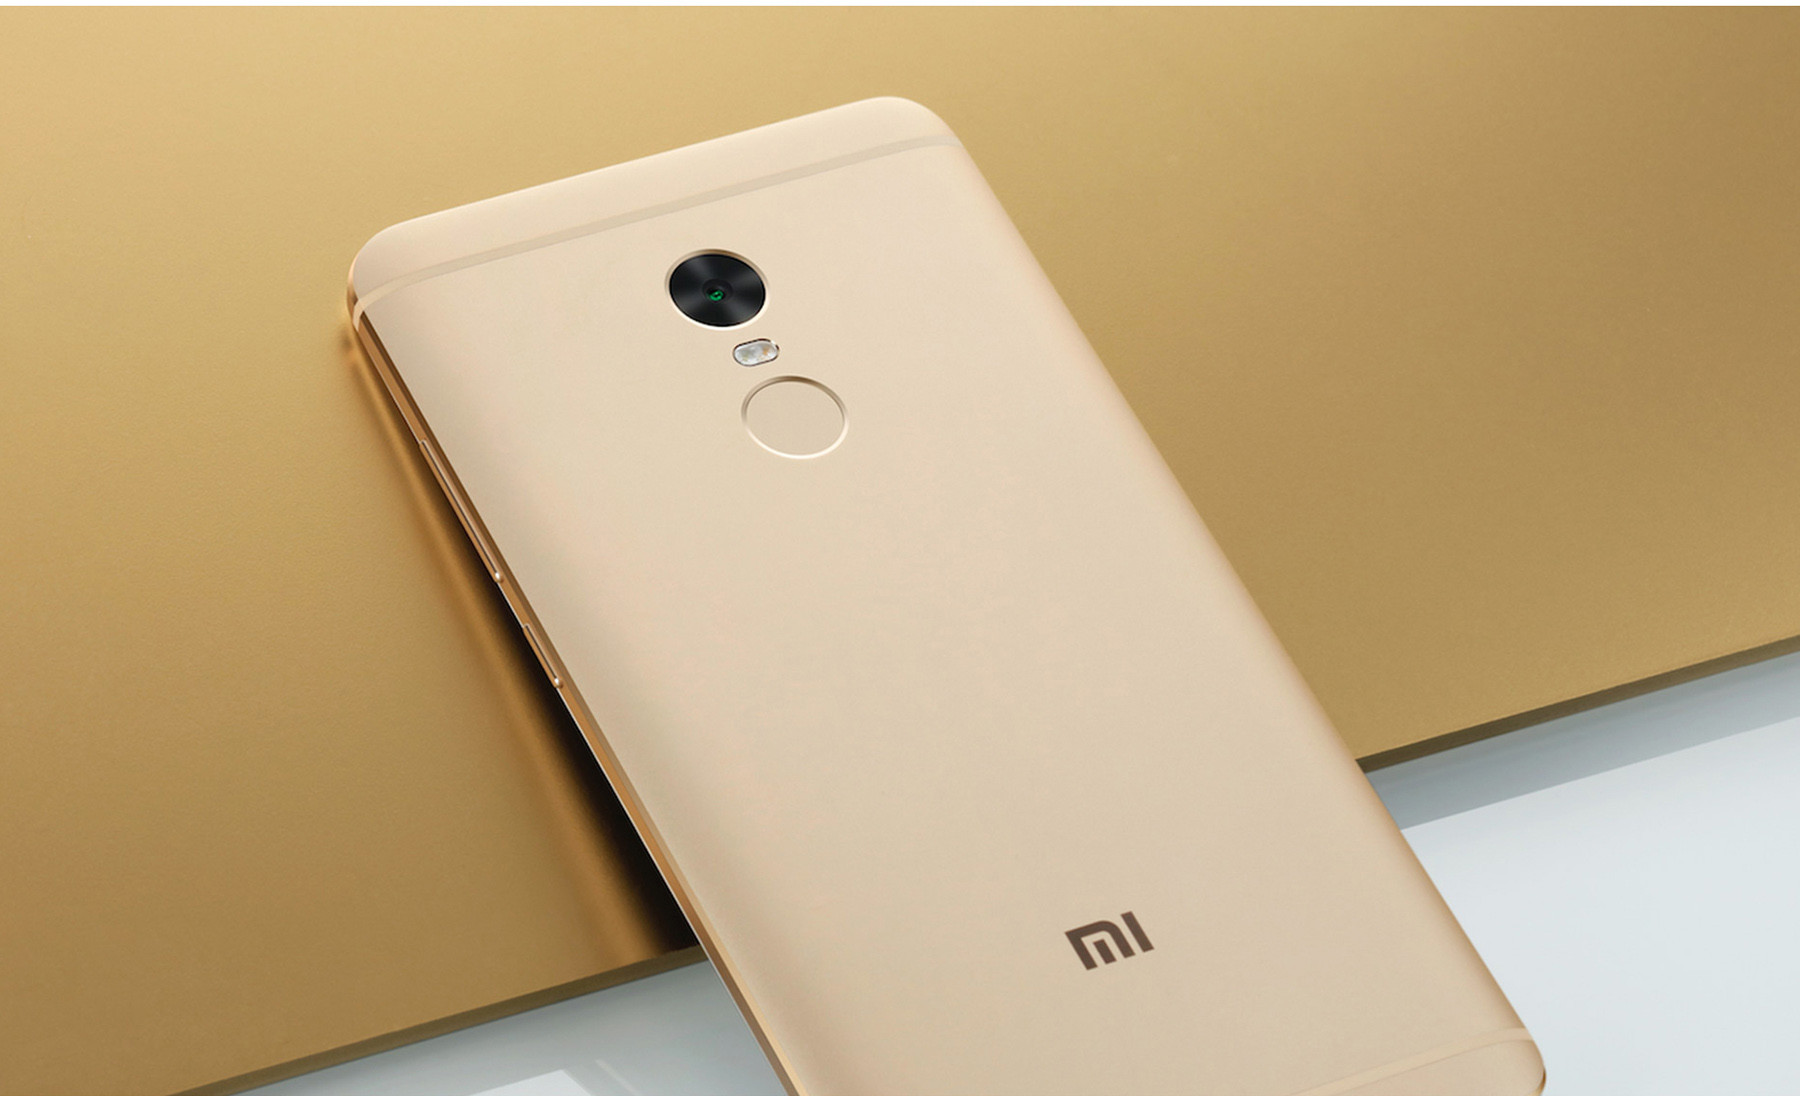 Xiaomi Redmi Note 4 4G Phablet MIUI 8 5 5 inch Snapdragon 625 Octa Core 2 0GHz